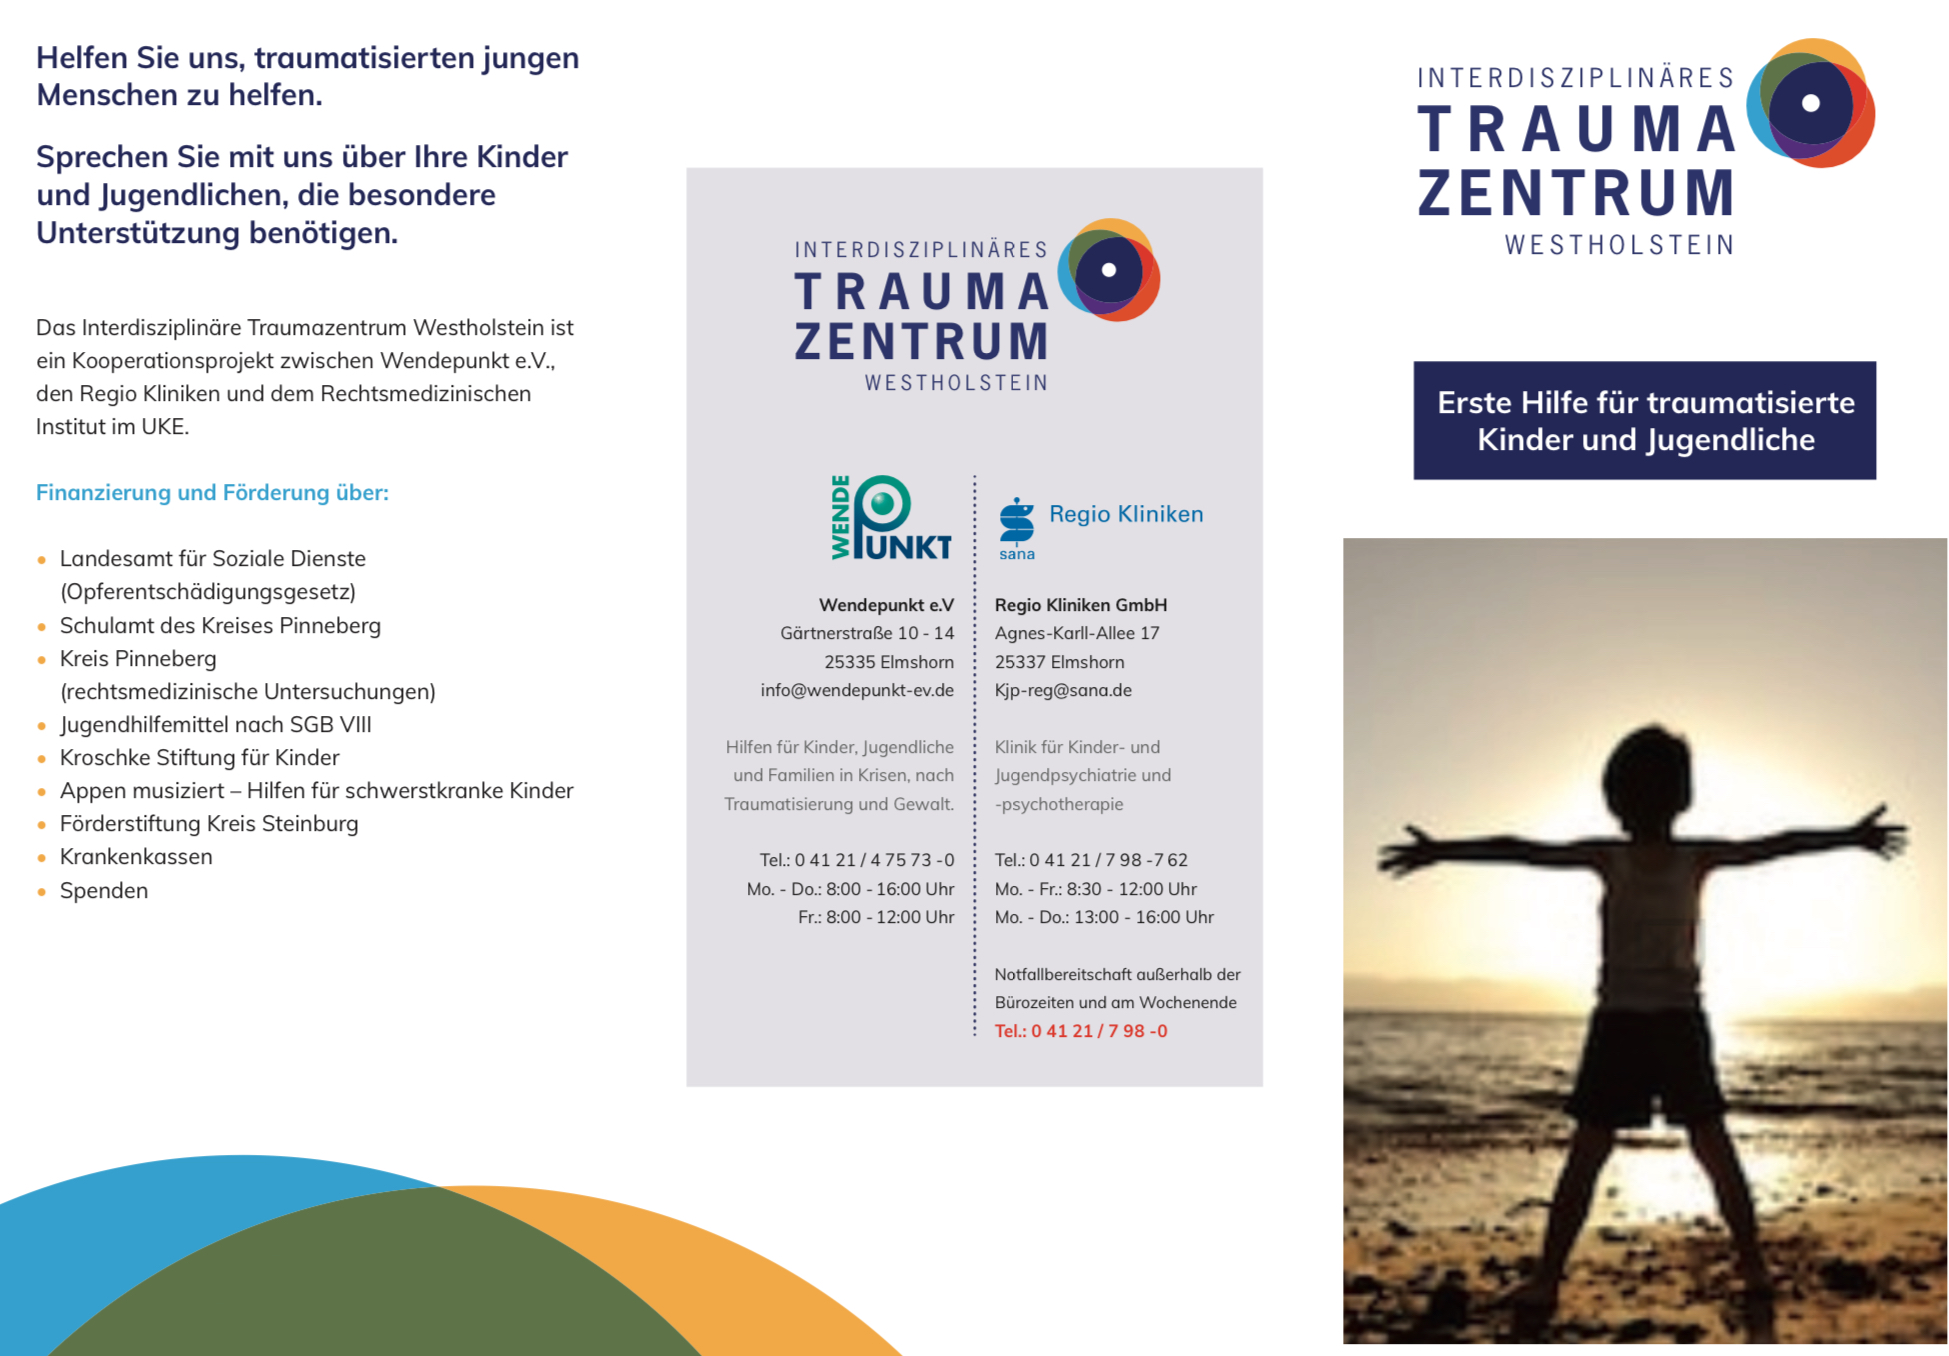 Flyer Traumazentrum